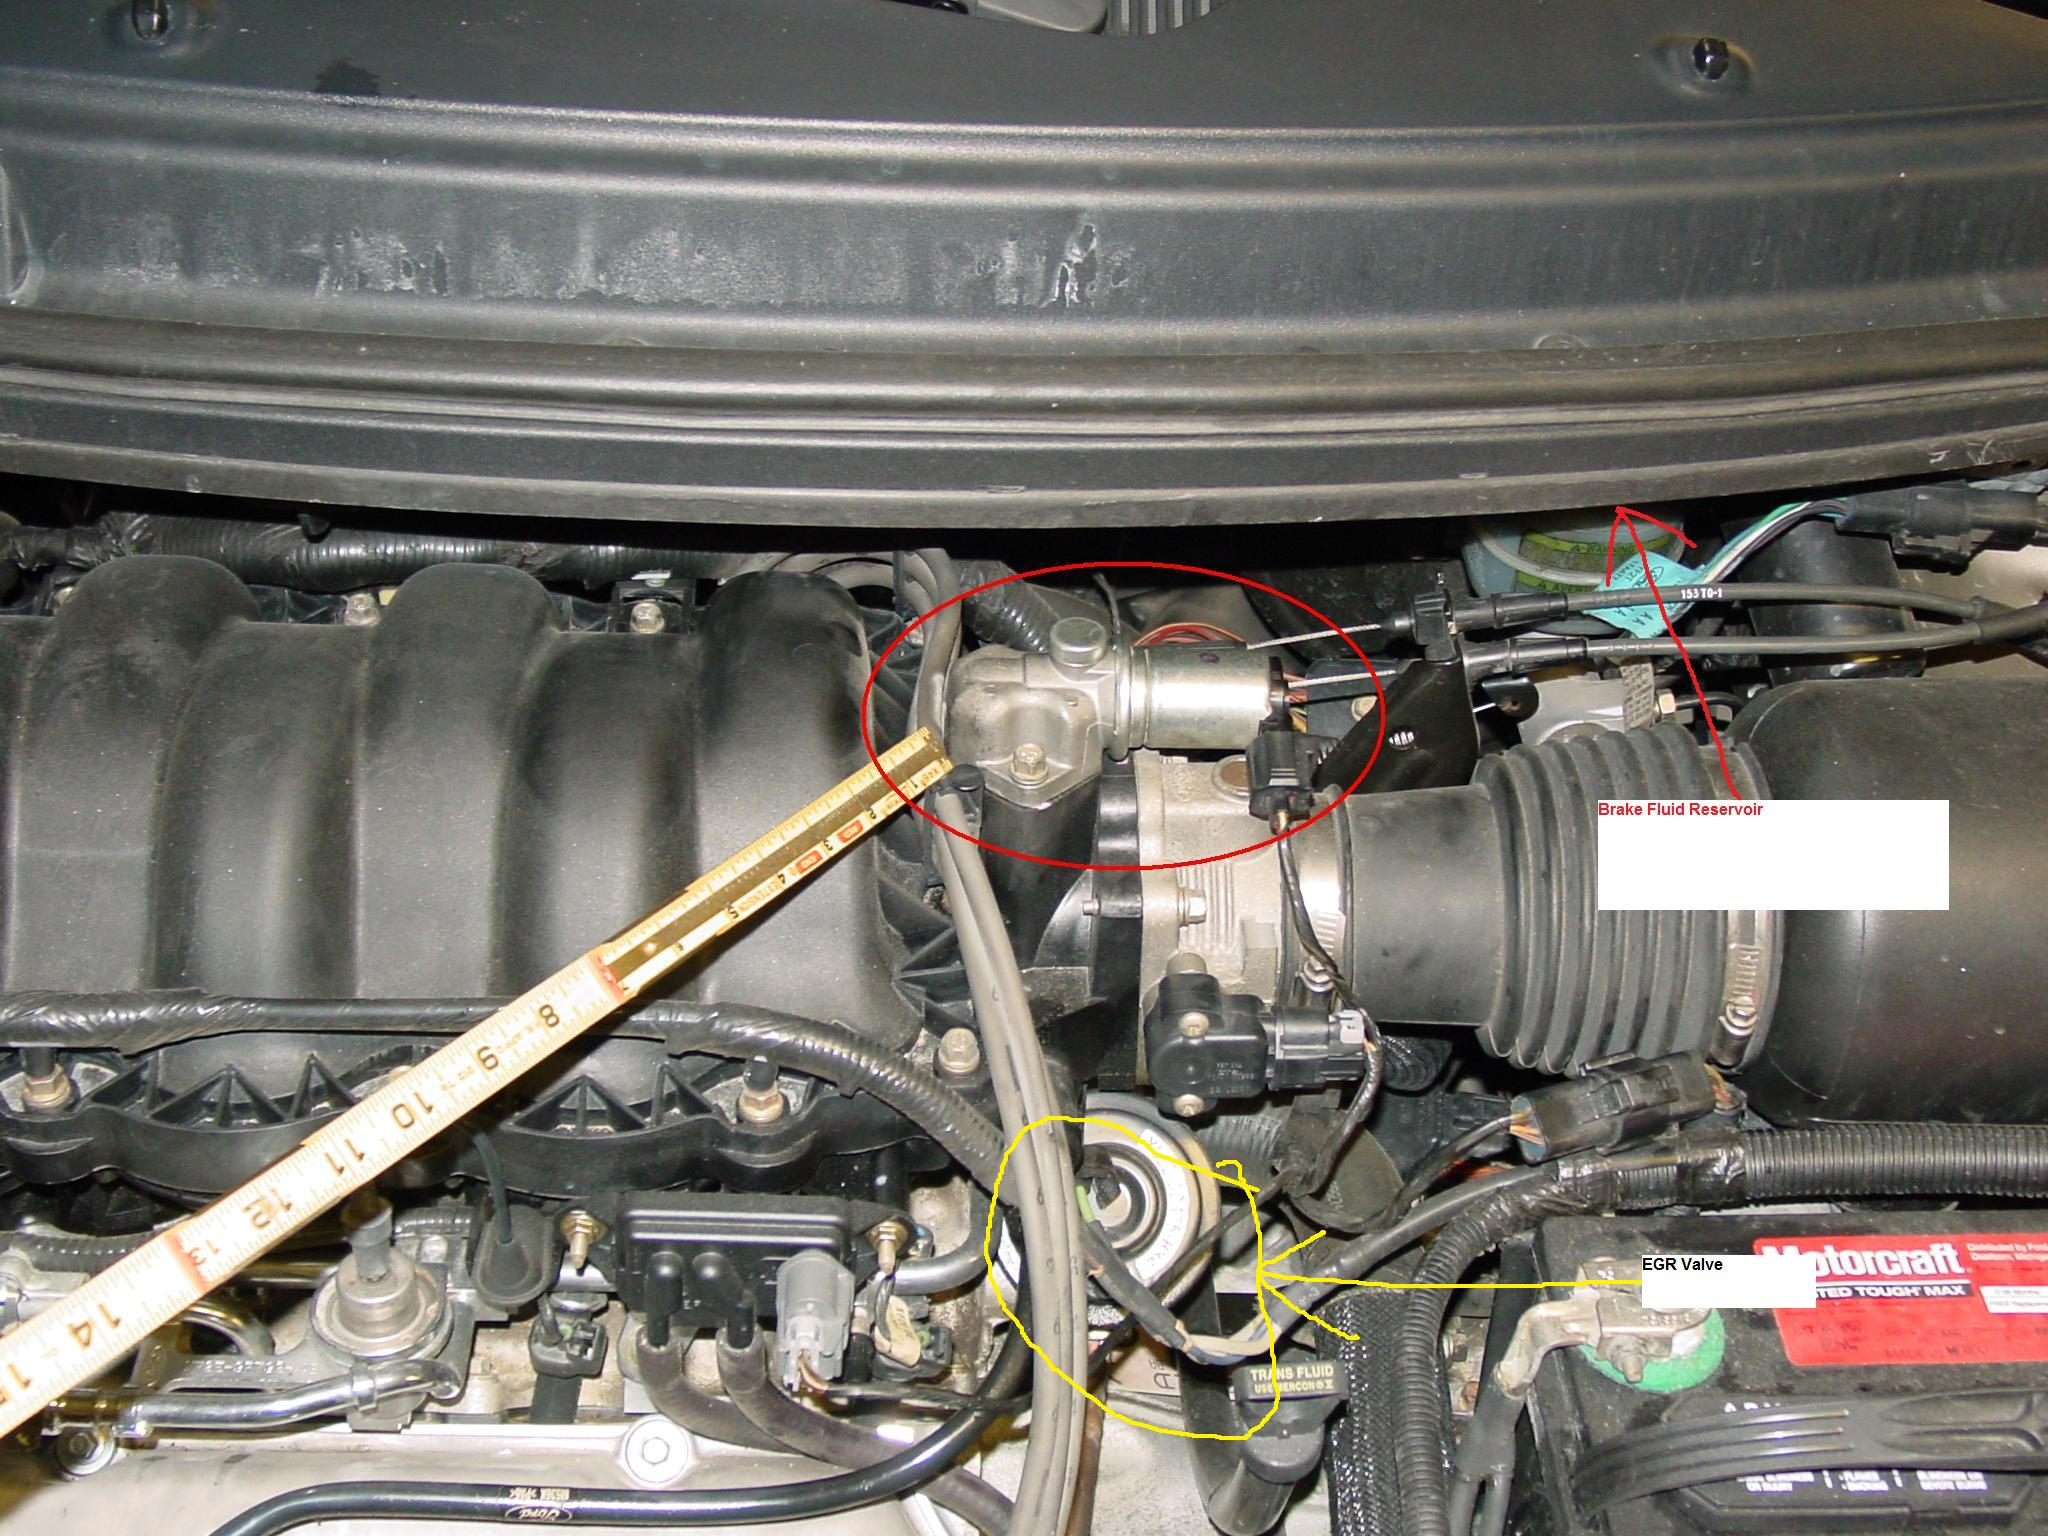 2001 Ford Windstar Fuel Filter Location Worksheet And Wiring Diagram 2005 Freestar Images Gallery